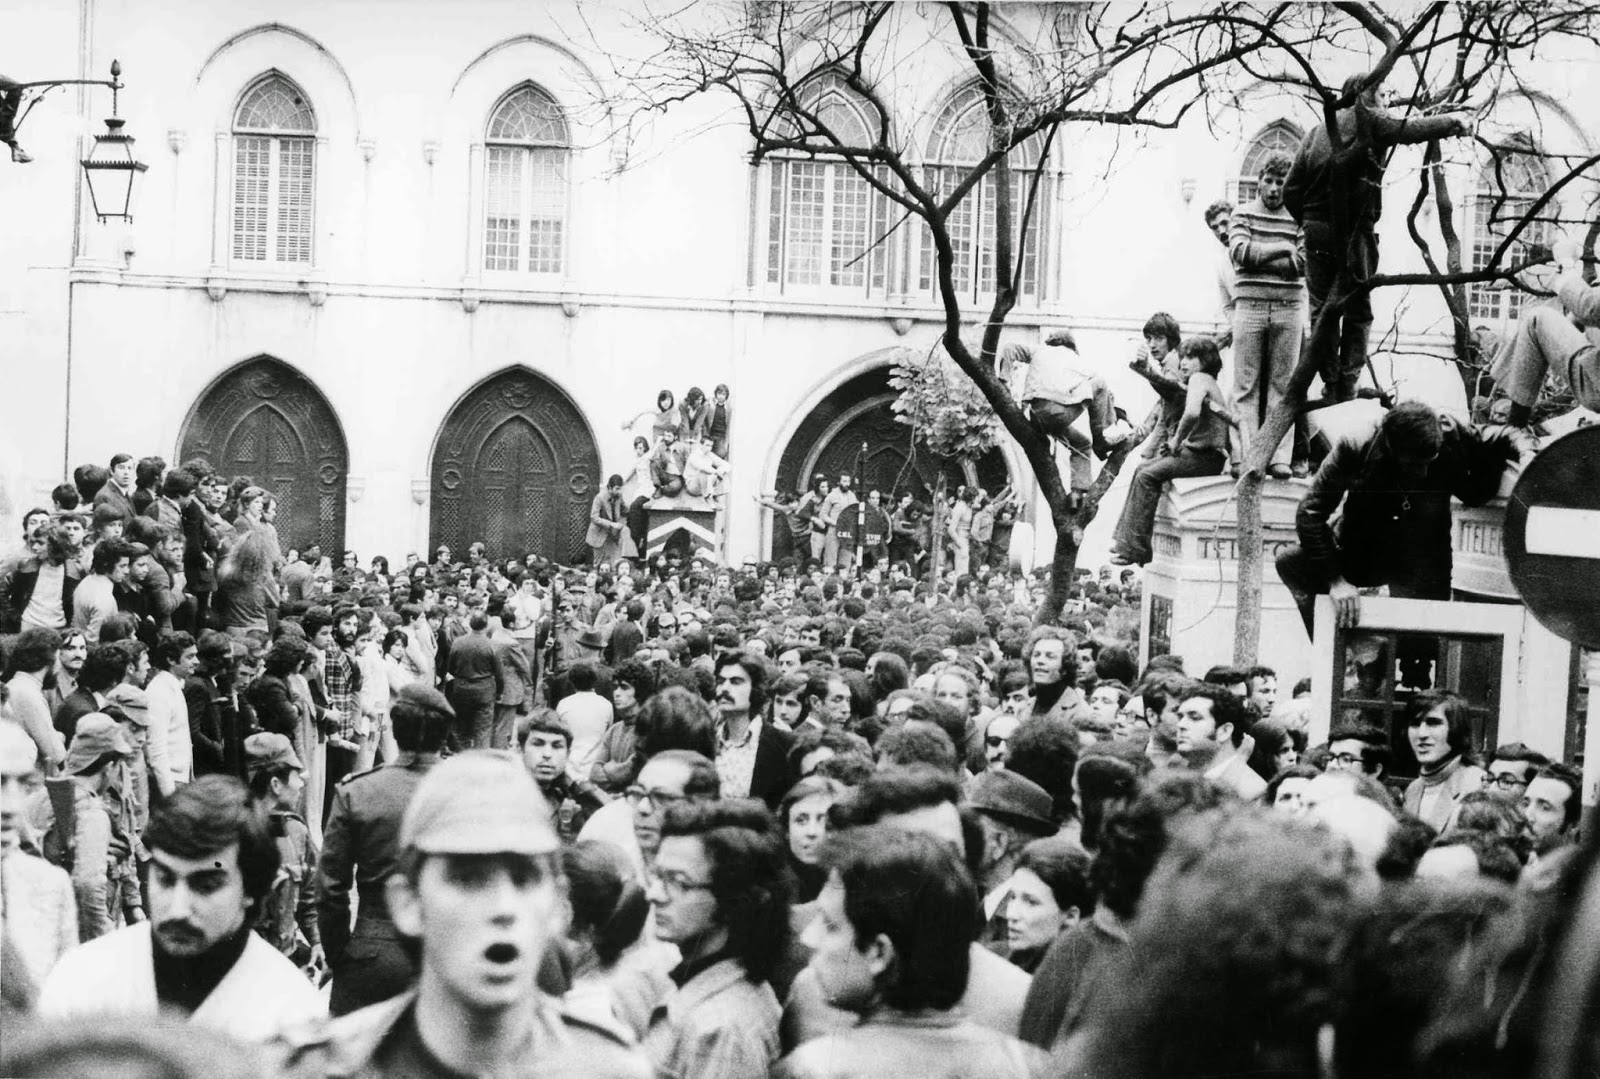 Cerco do Largo do Carmo no dia 25 de Abril de 1974